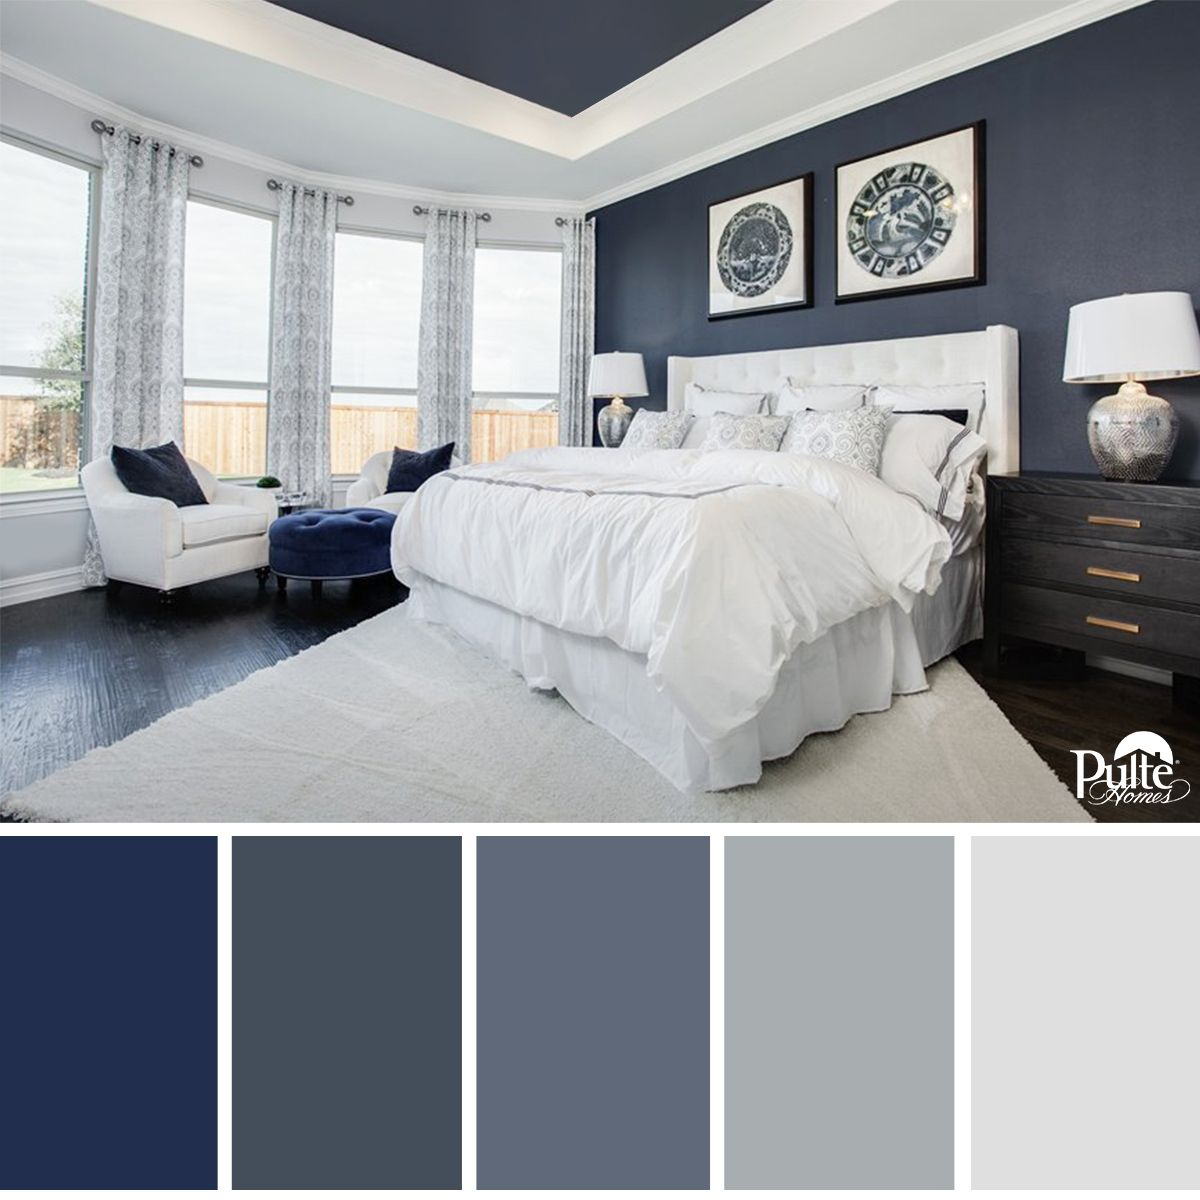 This bedroom design has the right idea. The rich blue color ...